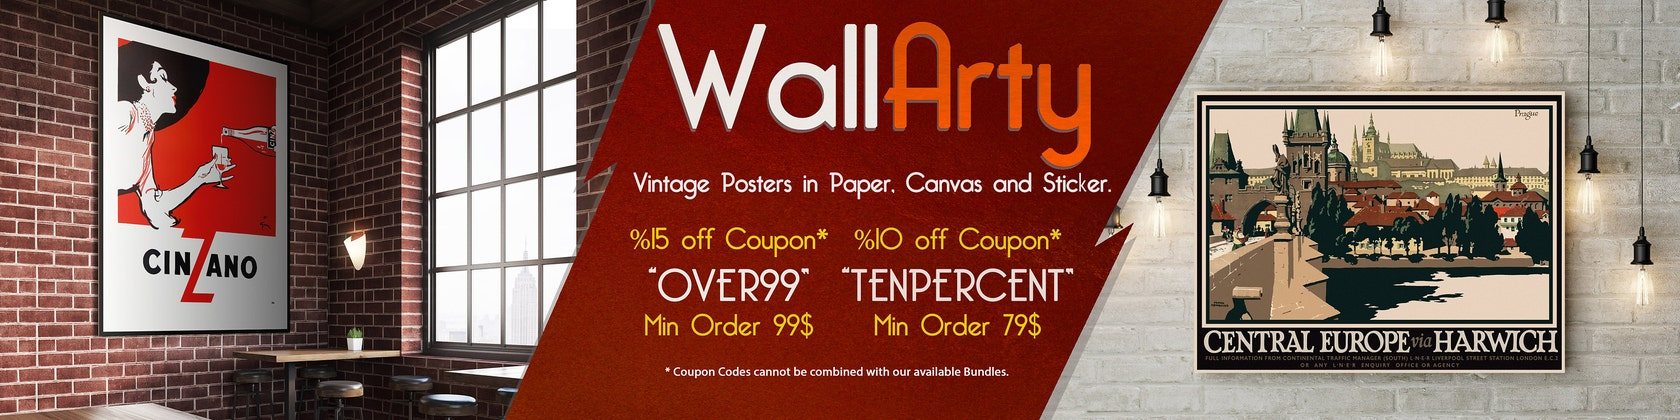 Decorative vintage poster sticker canvas art prints by wallarty fandeluxe Image collections